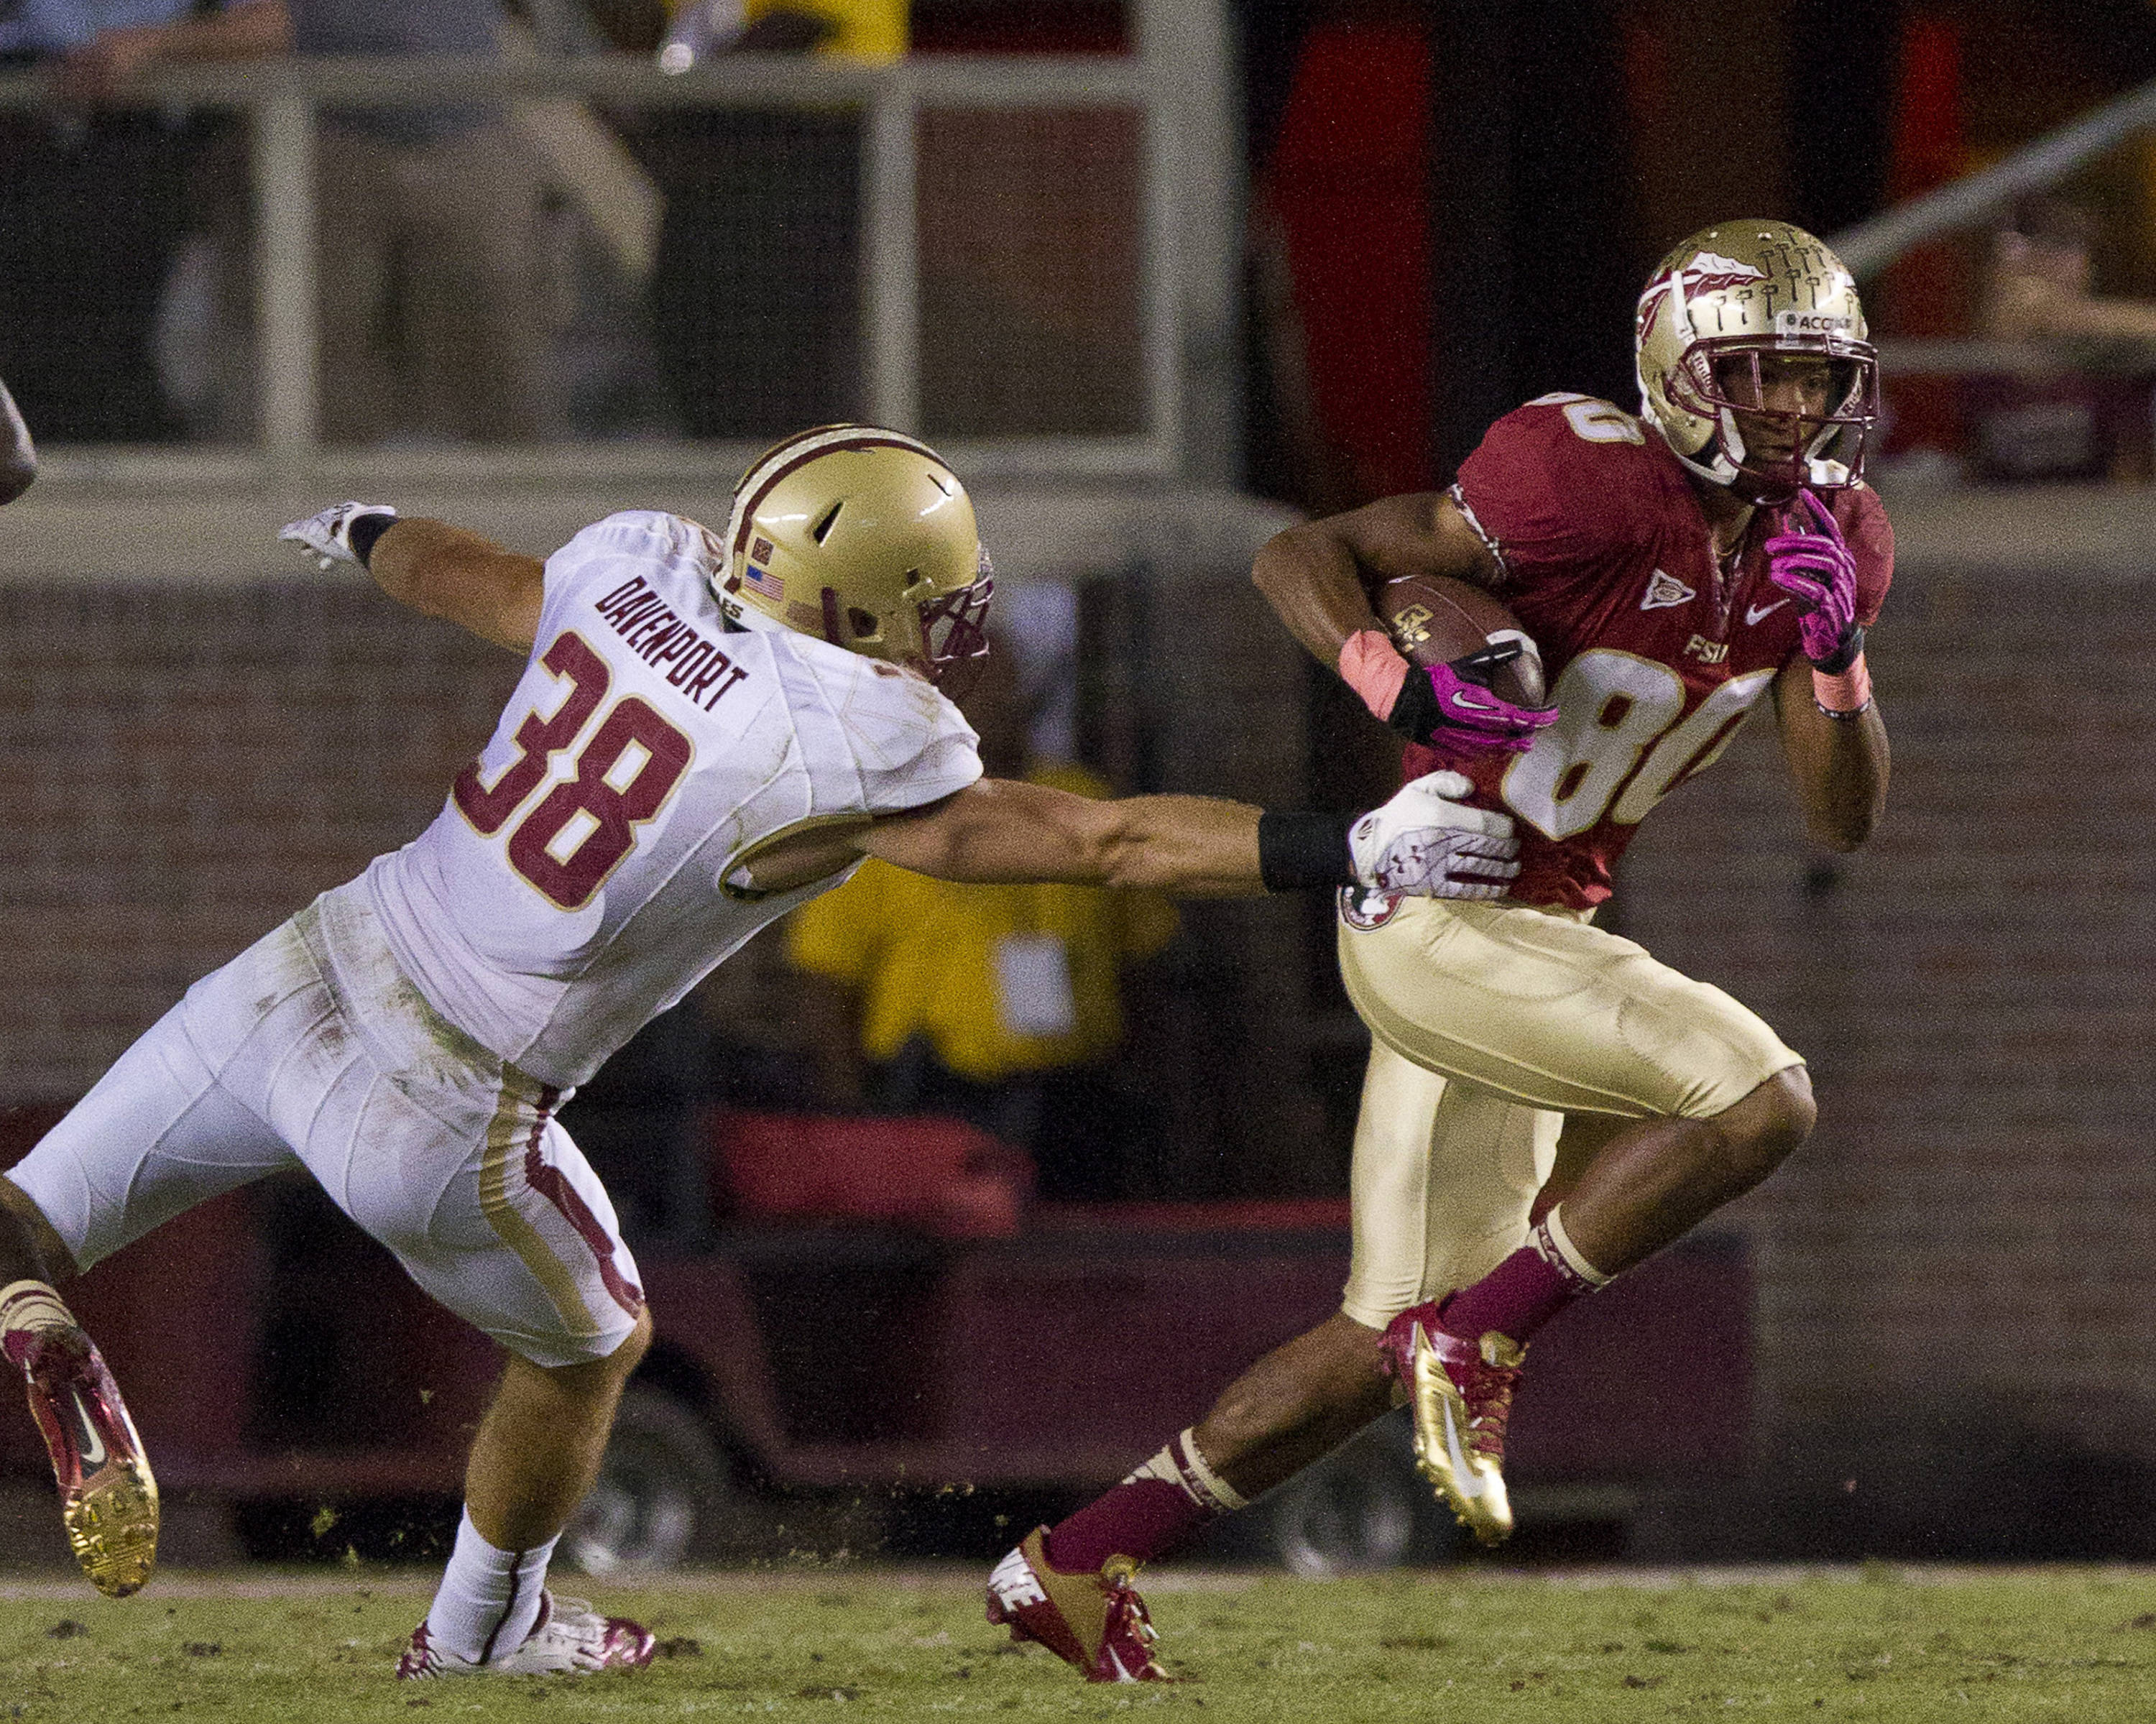 Rashad Greene (80) carries the ball during the FSU vs Boston College football game on October 13, 2012 in Tallahassee, Fla.